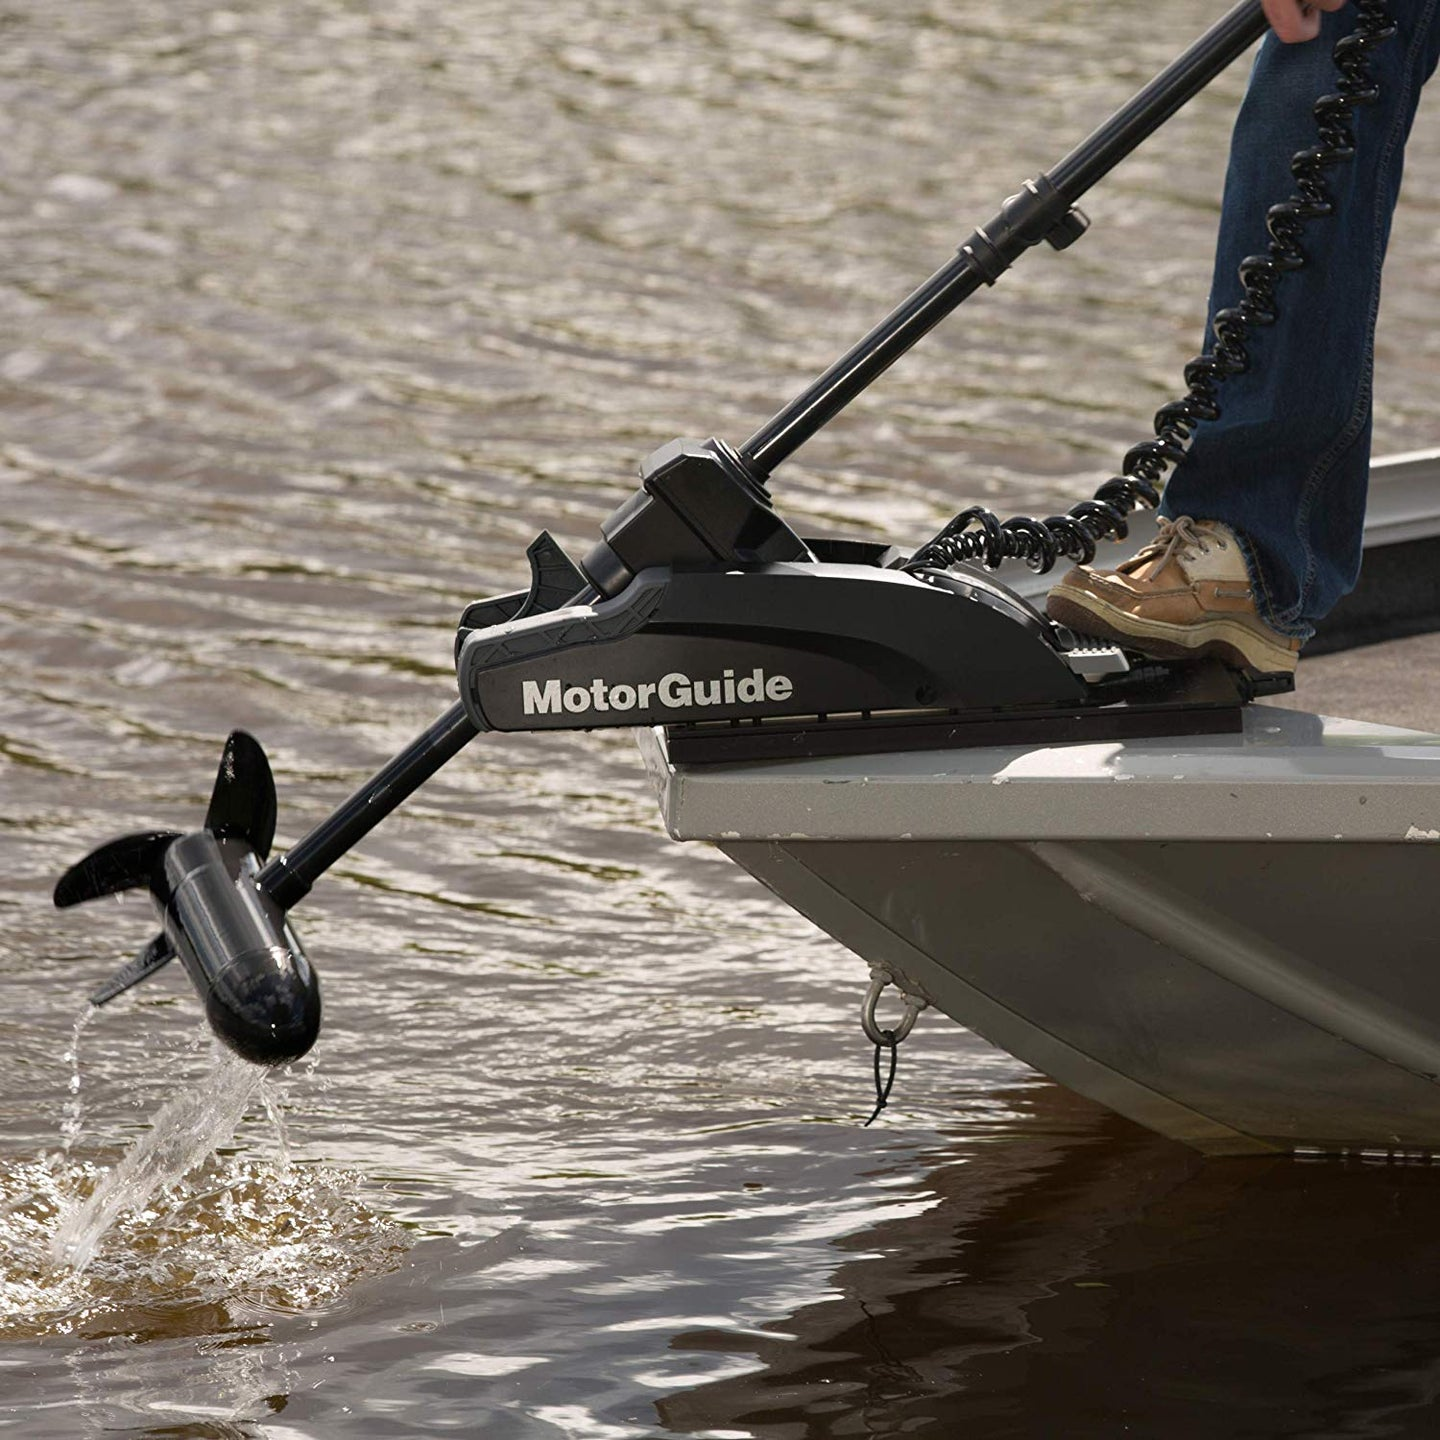 Trolling motor being pulled out of the water